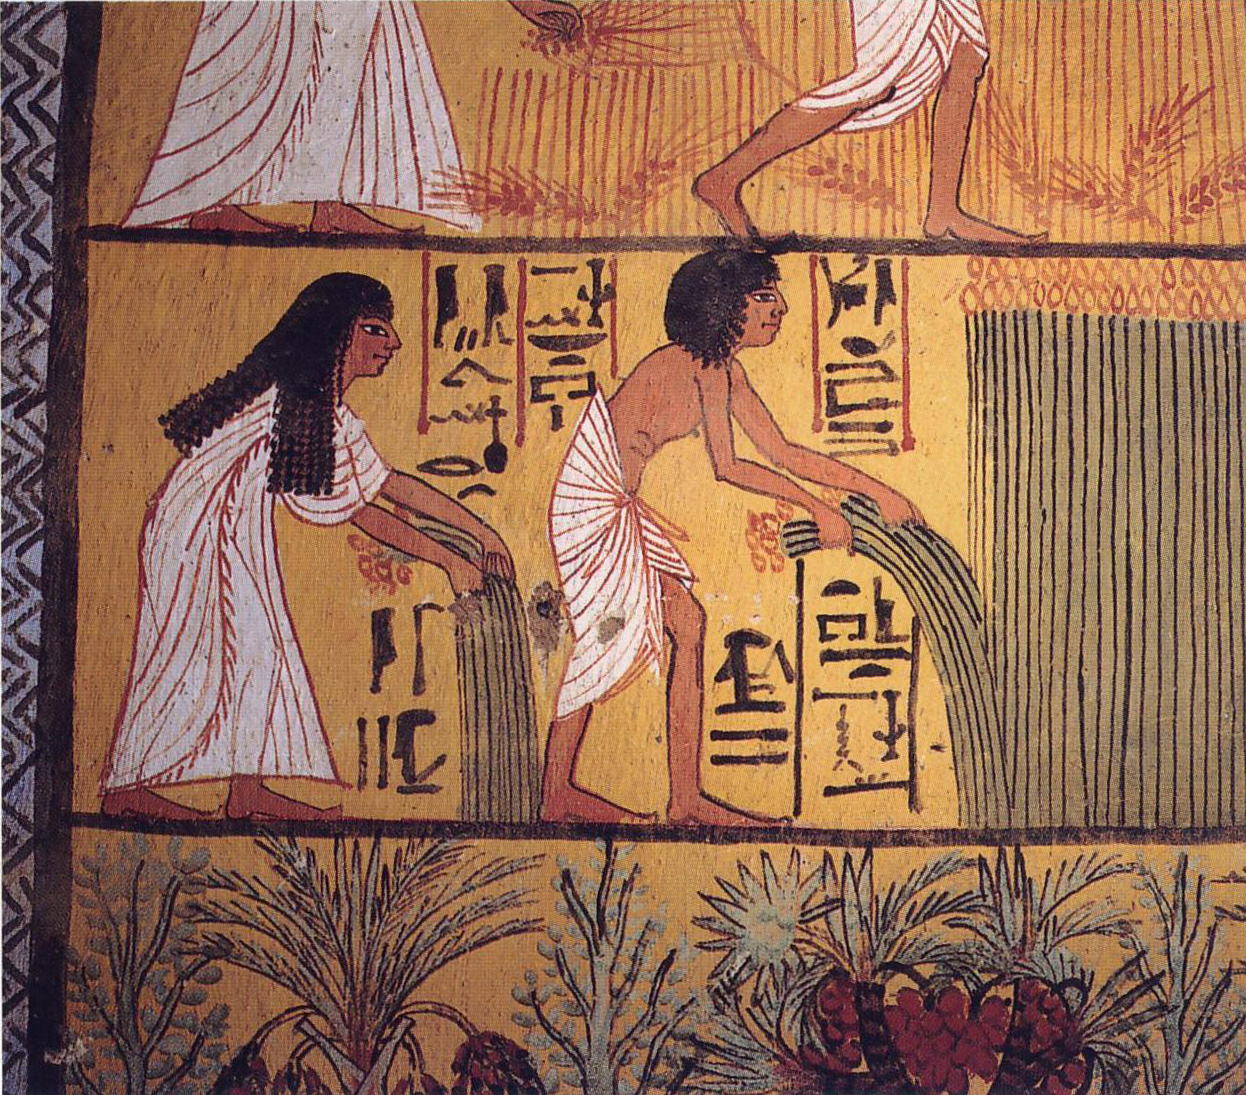 https://i0.wp.com/upload.wikimedia.org/wikipedia/commons/a/ae/Egyptian_harvest.jpg